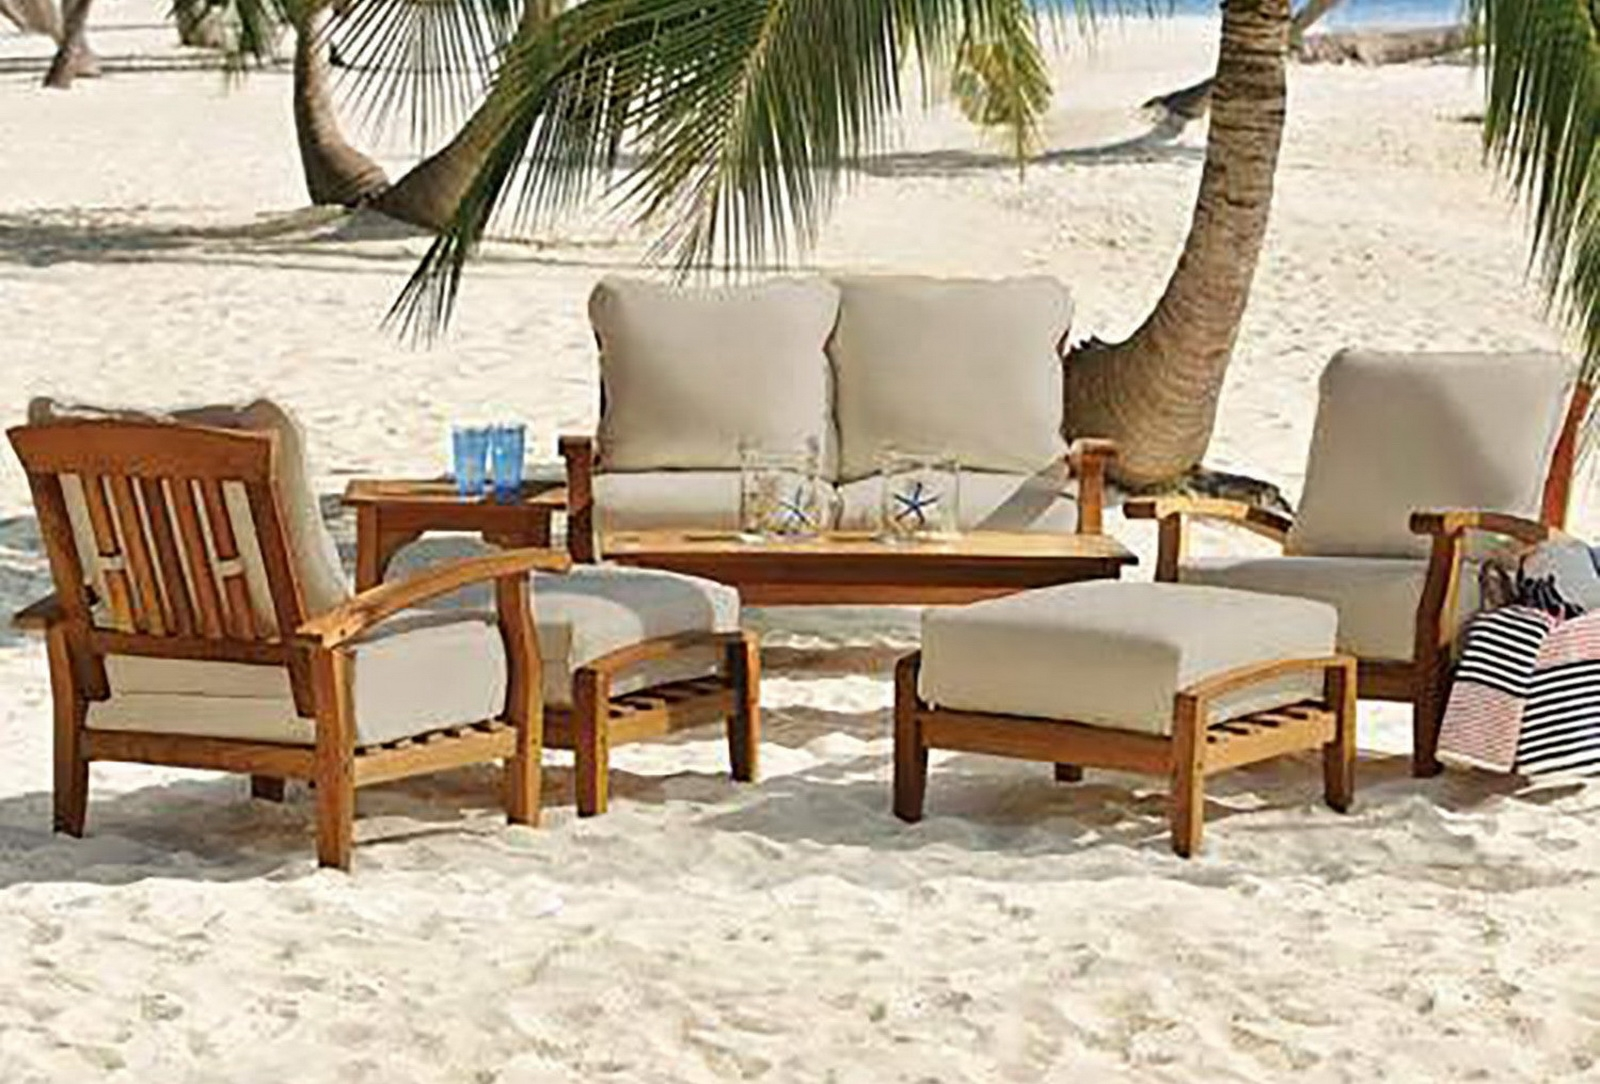 teak table and chairs garden baby bathtub ring seat chair 7 piece wood outdoor patio seating set furniture white cushions